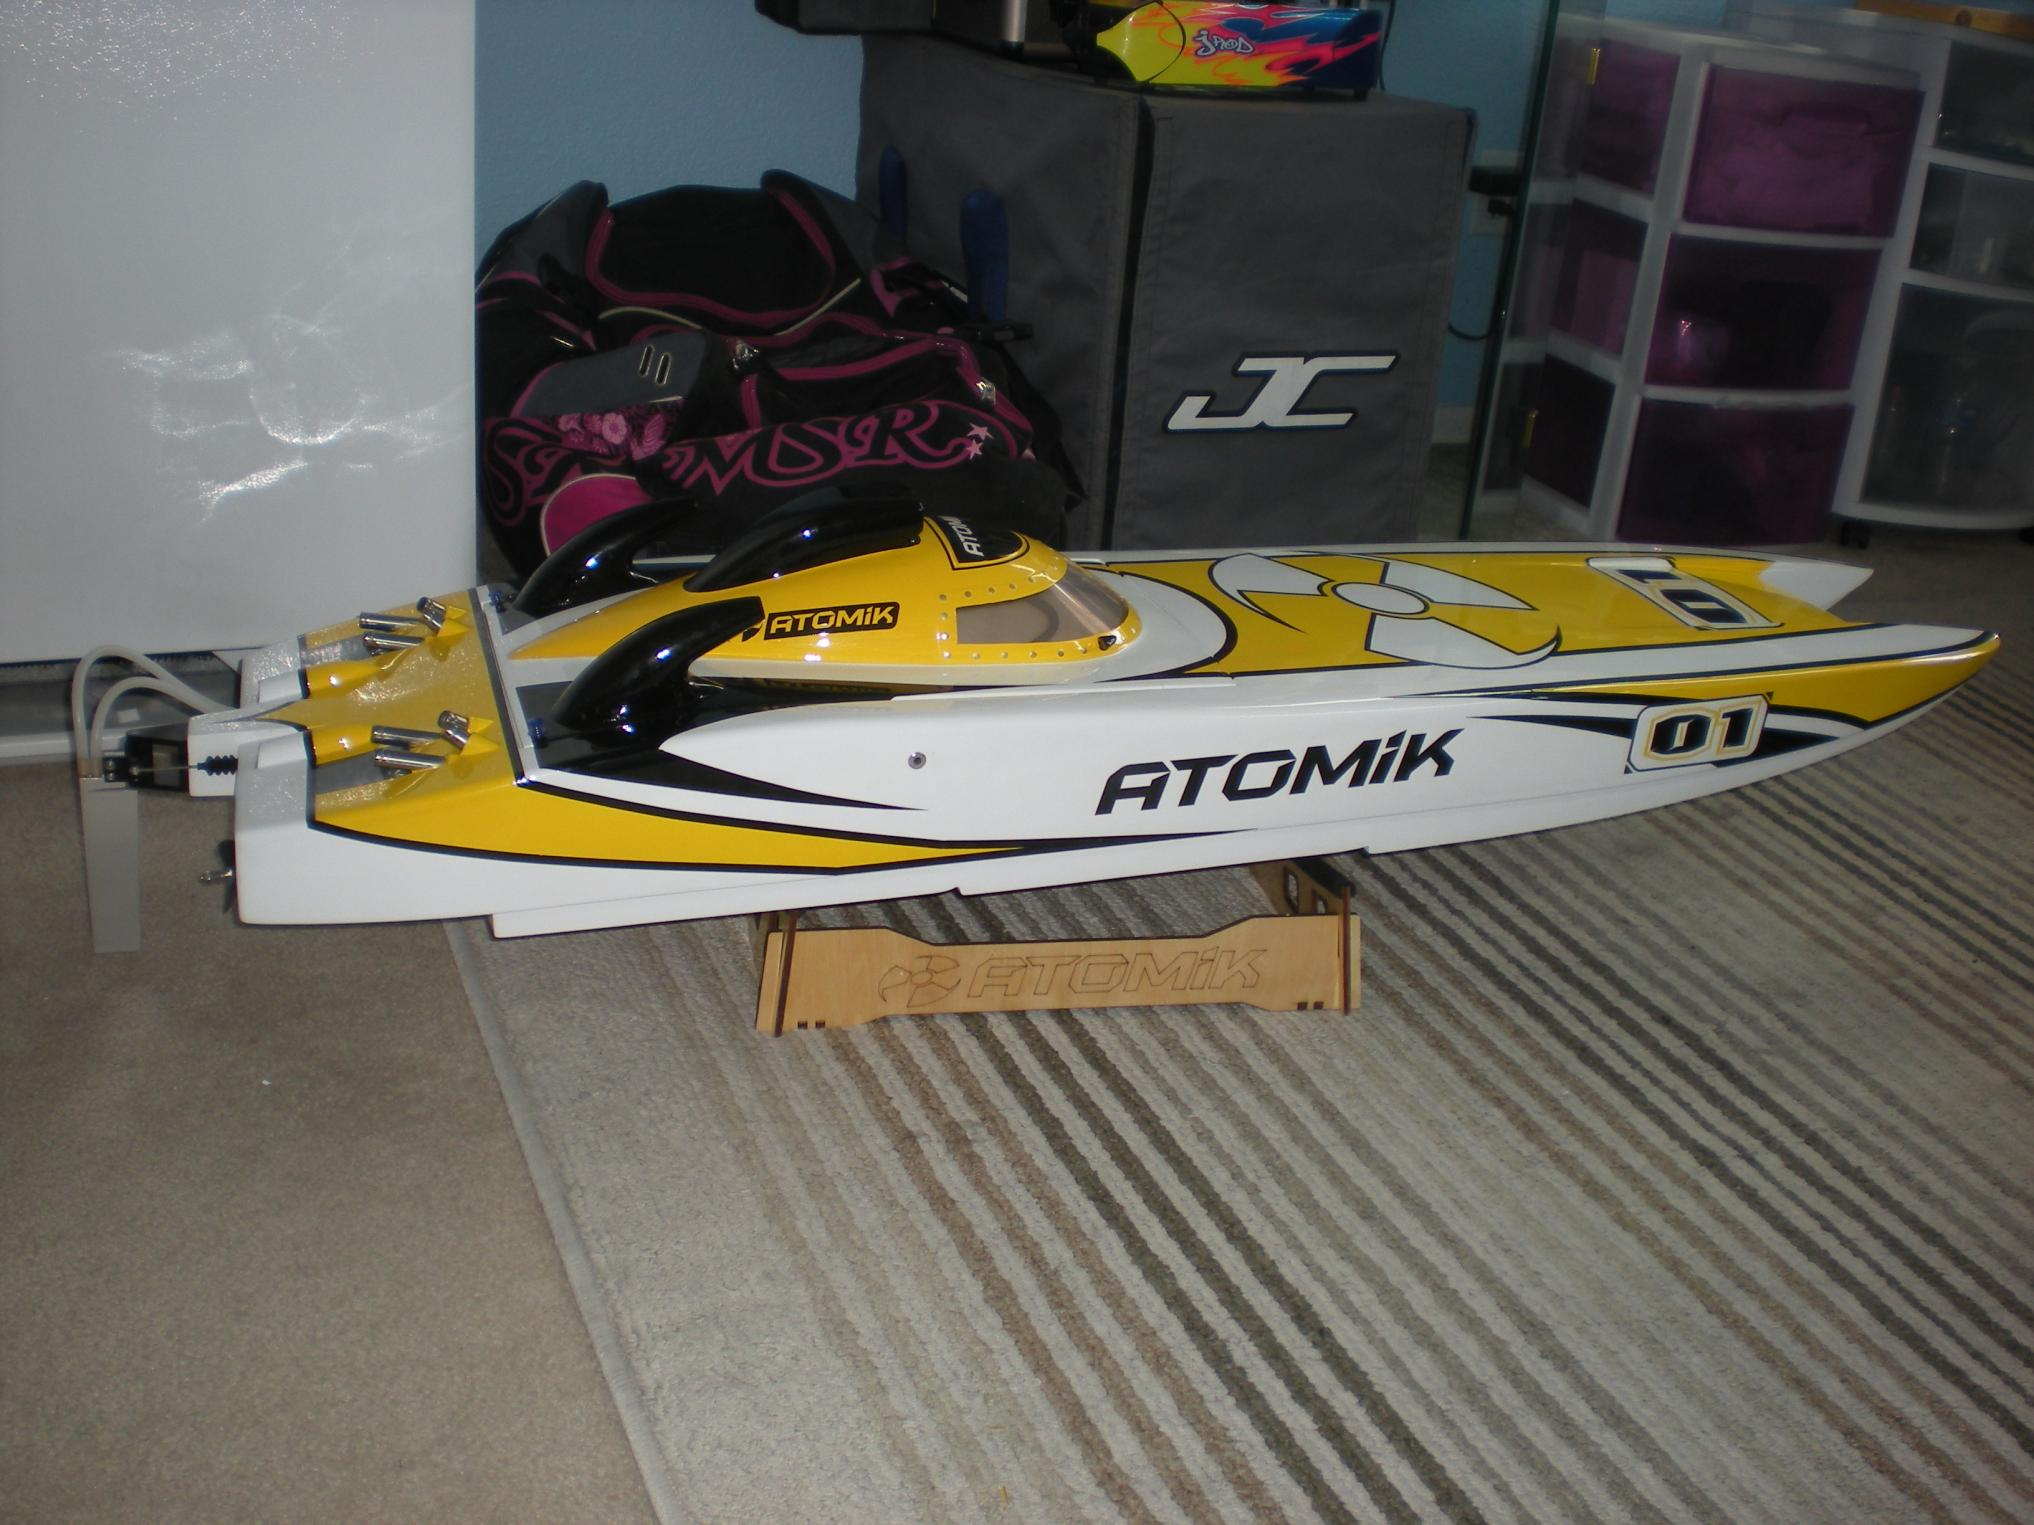 Used Rc Boats For Sale on rc boat classifieds, rc boat propellers, rc boat clubs, rc boat videos, rc boat company, rc boat trader, rc boat transport, rc bass boat, rc boat molds, rc boat designs, rc inflatable boat, rc boat parts, rc boat accessories, rc boat plans, rc boat brands, rc pontoon boat, rc f1 tunnel boat, rc boat construction, rc boat trim tabs, rc boat hull,